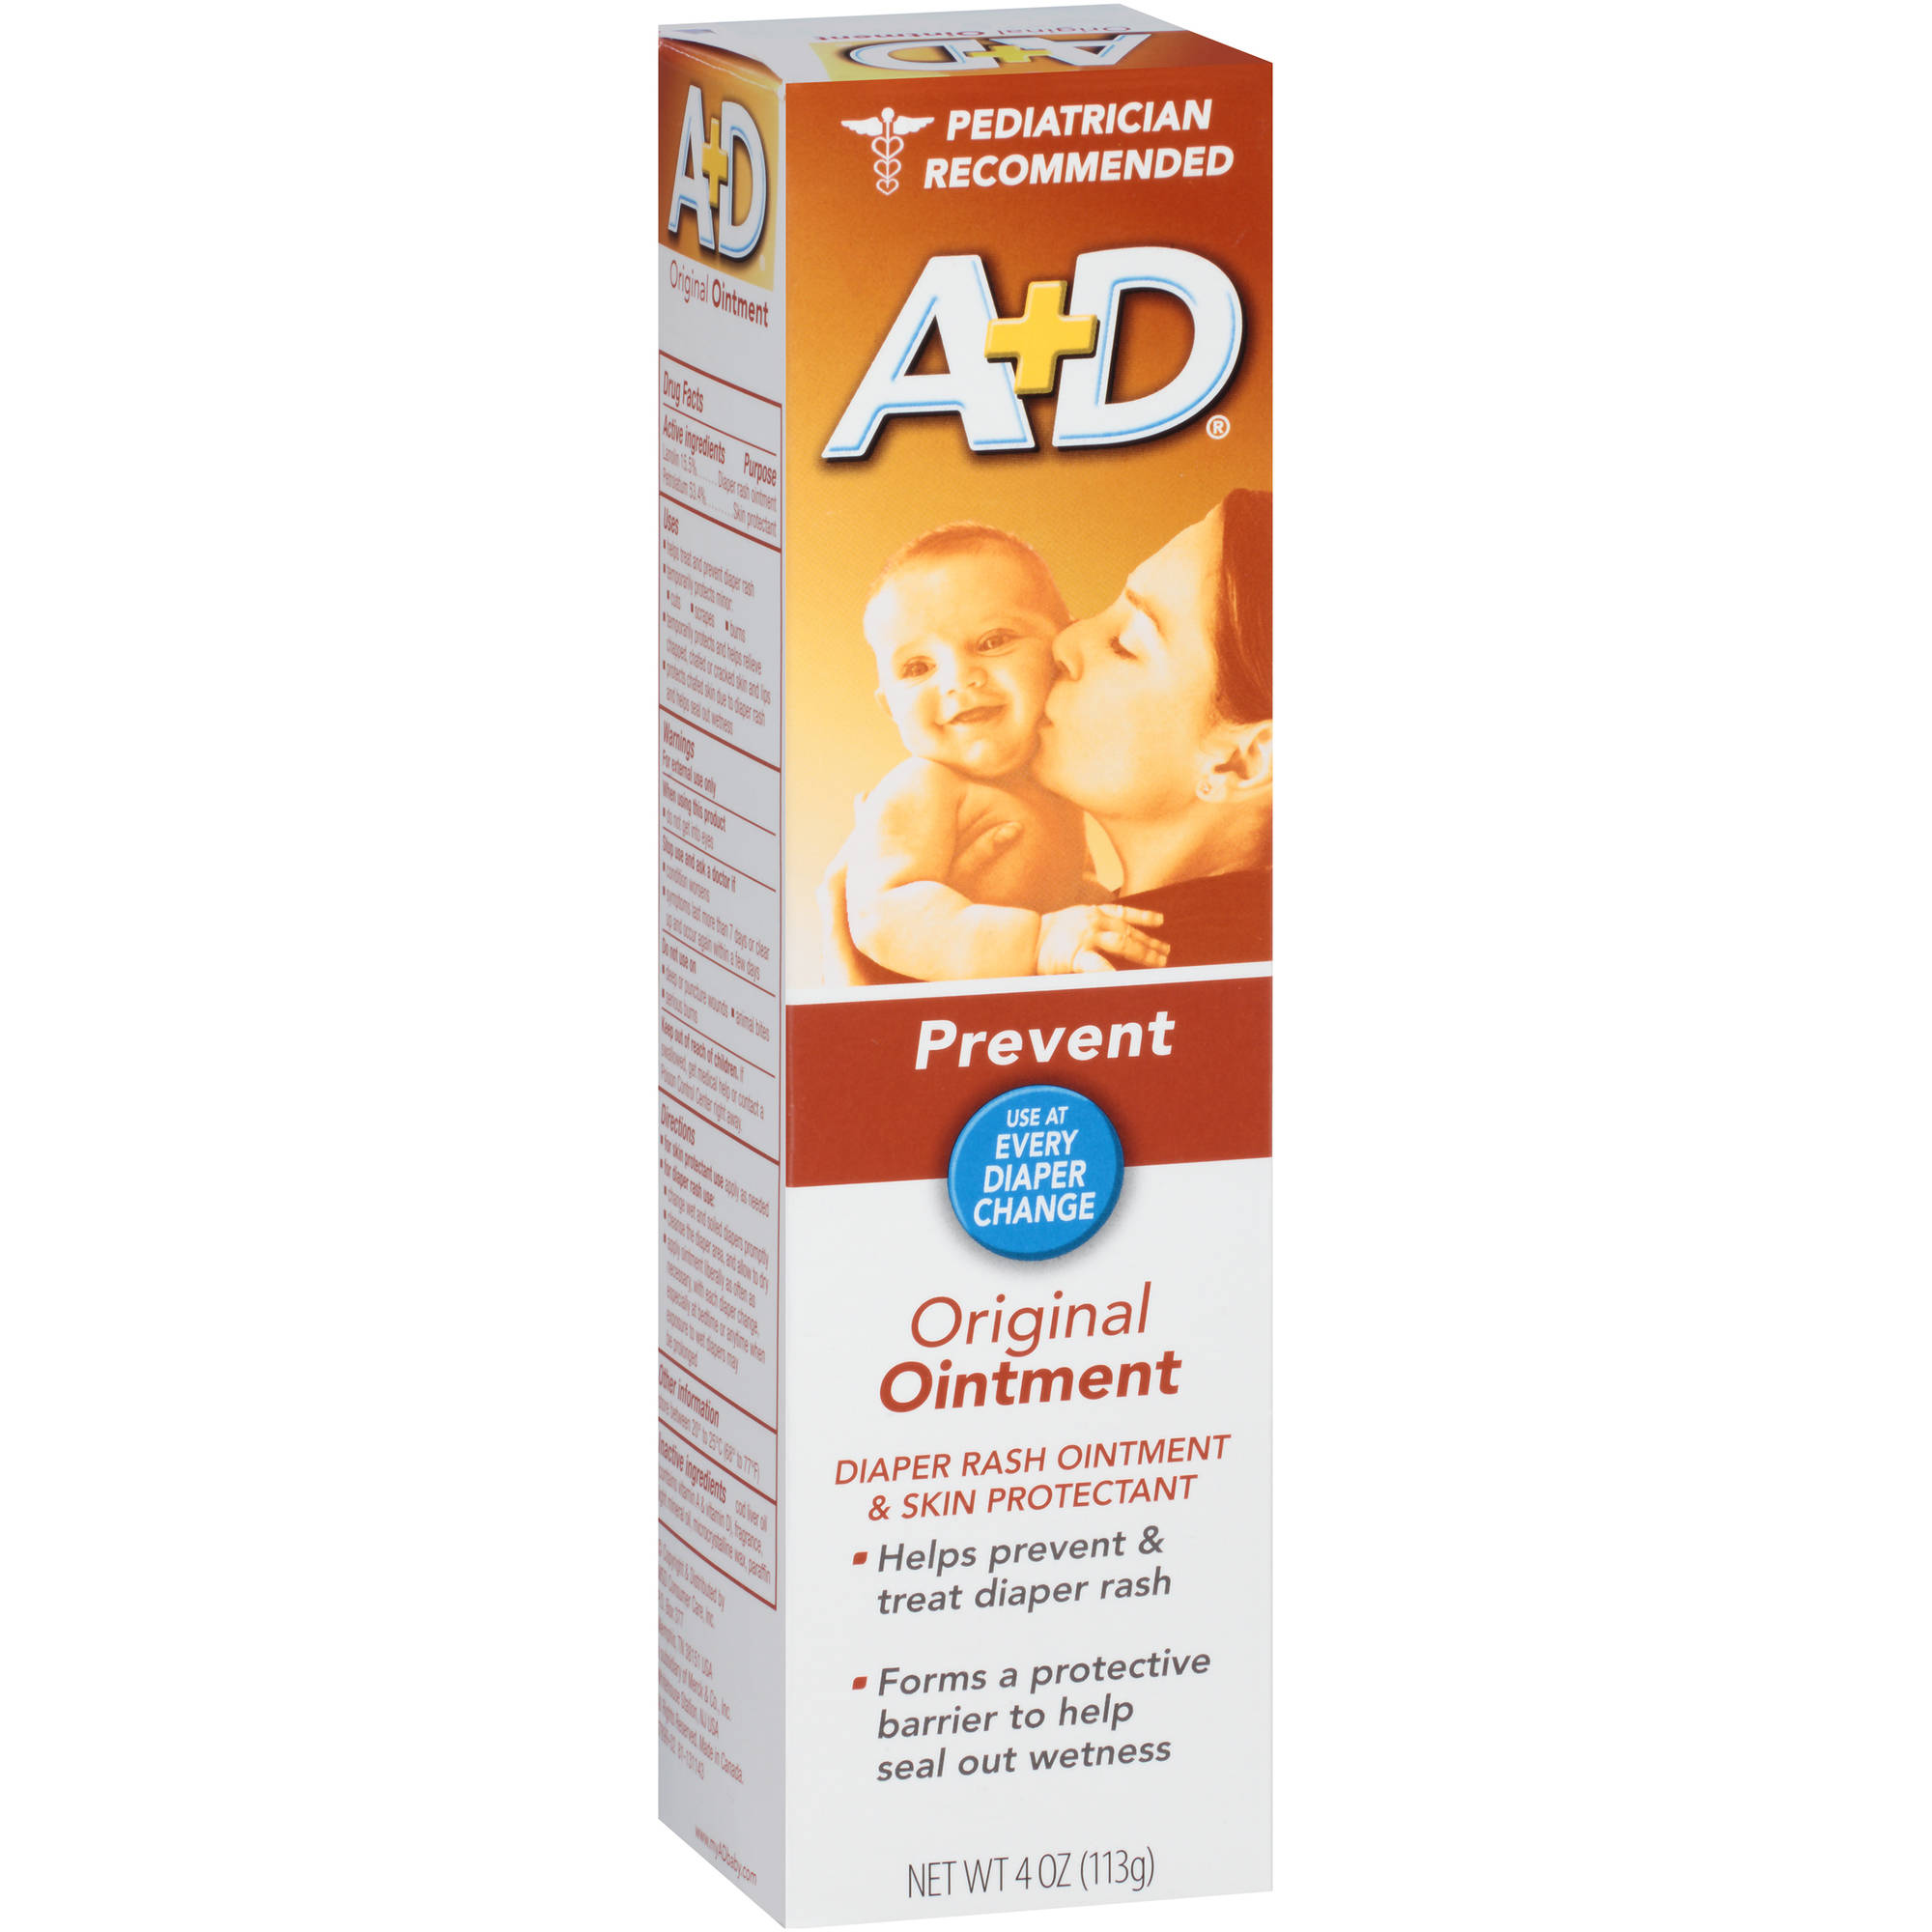 A+D Prevent Original Ointment Diaper Rash Ointment & Skin Protectant, 4 oz